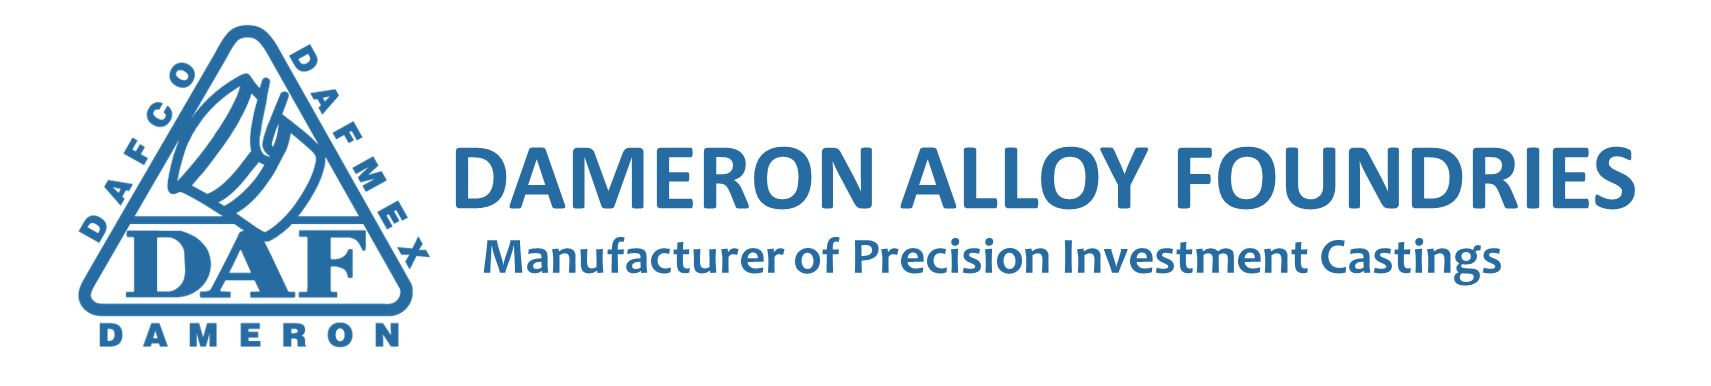 Dameron Alloy Foundries